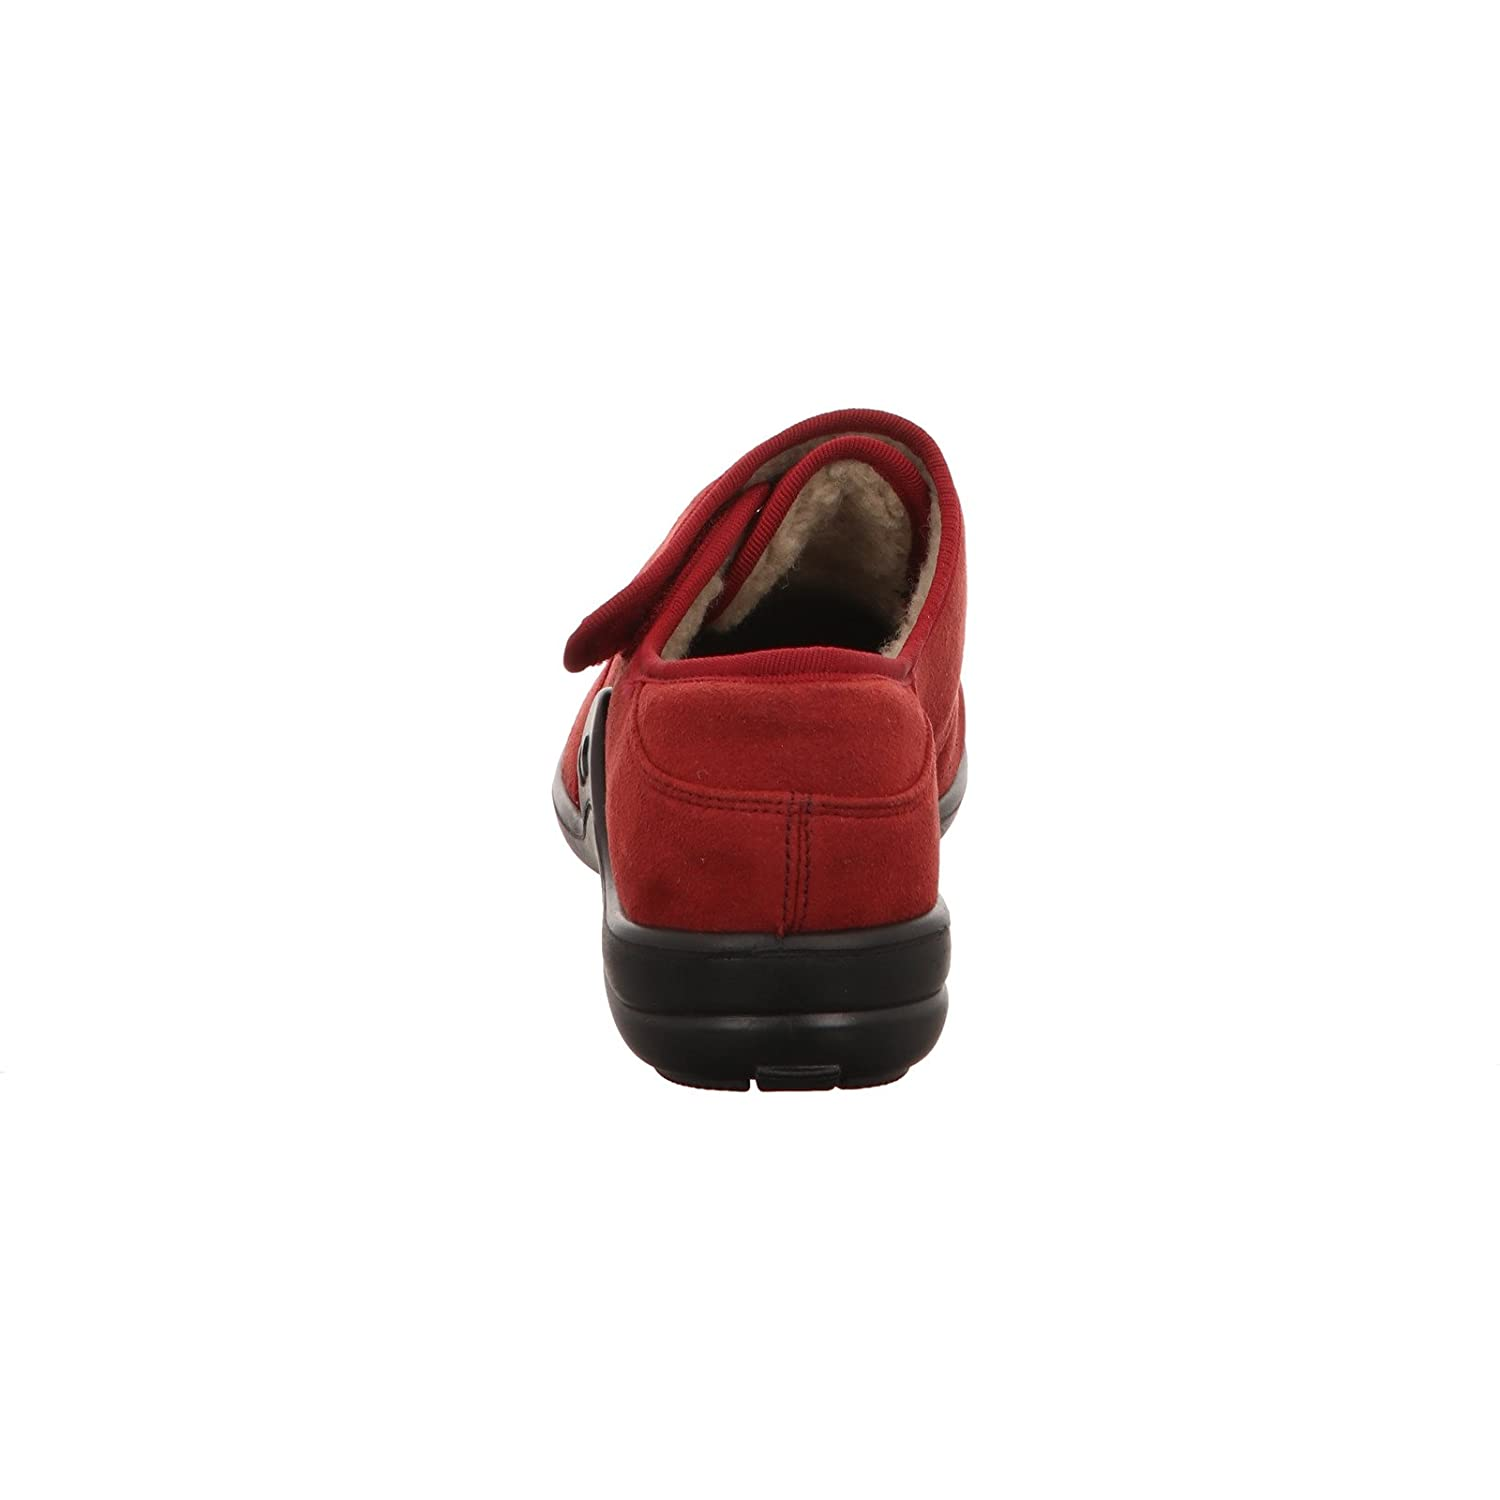 Romika Maddy H H Maddy 08 Hausschuh ROT d24687